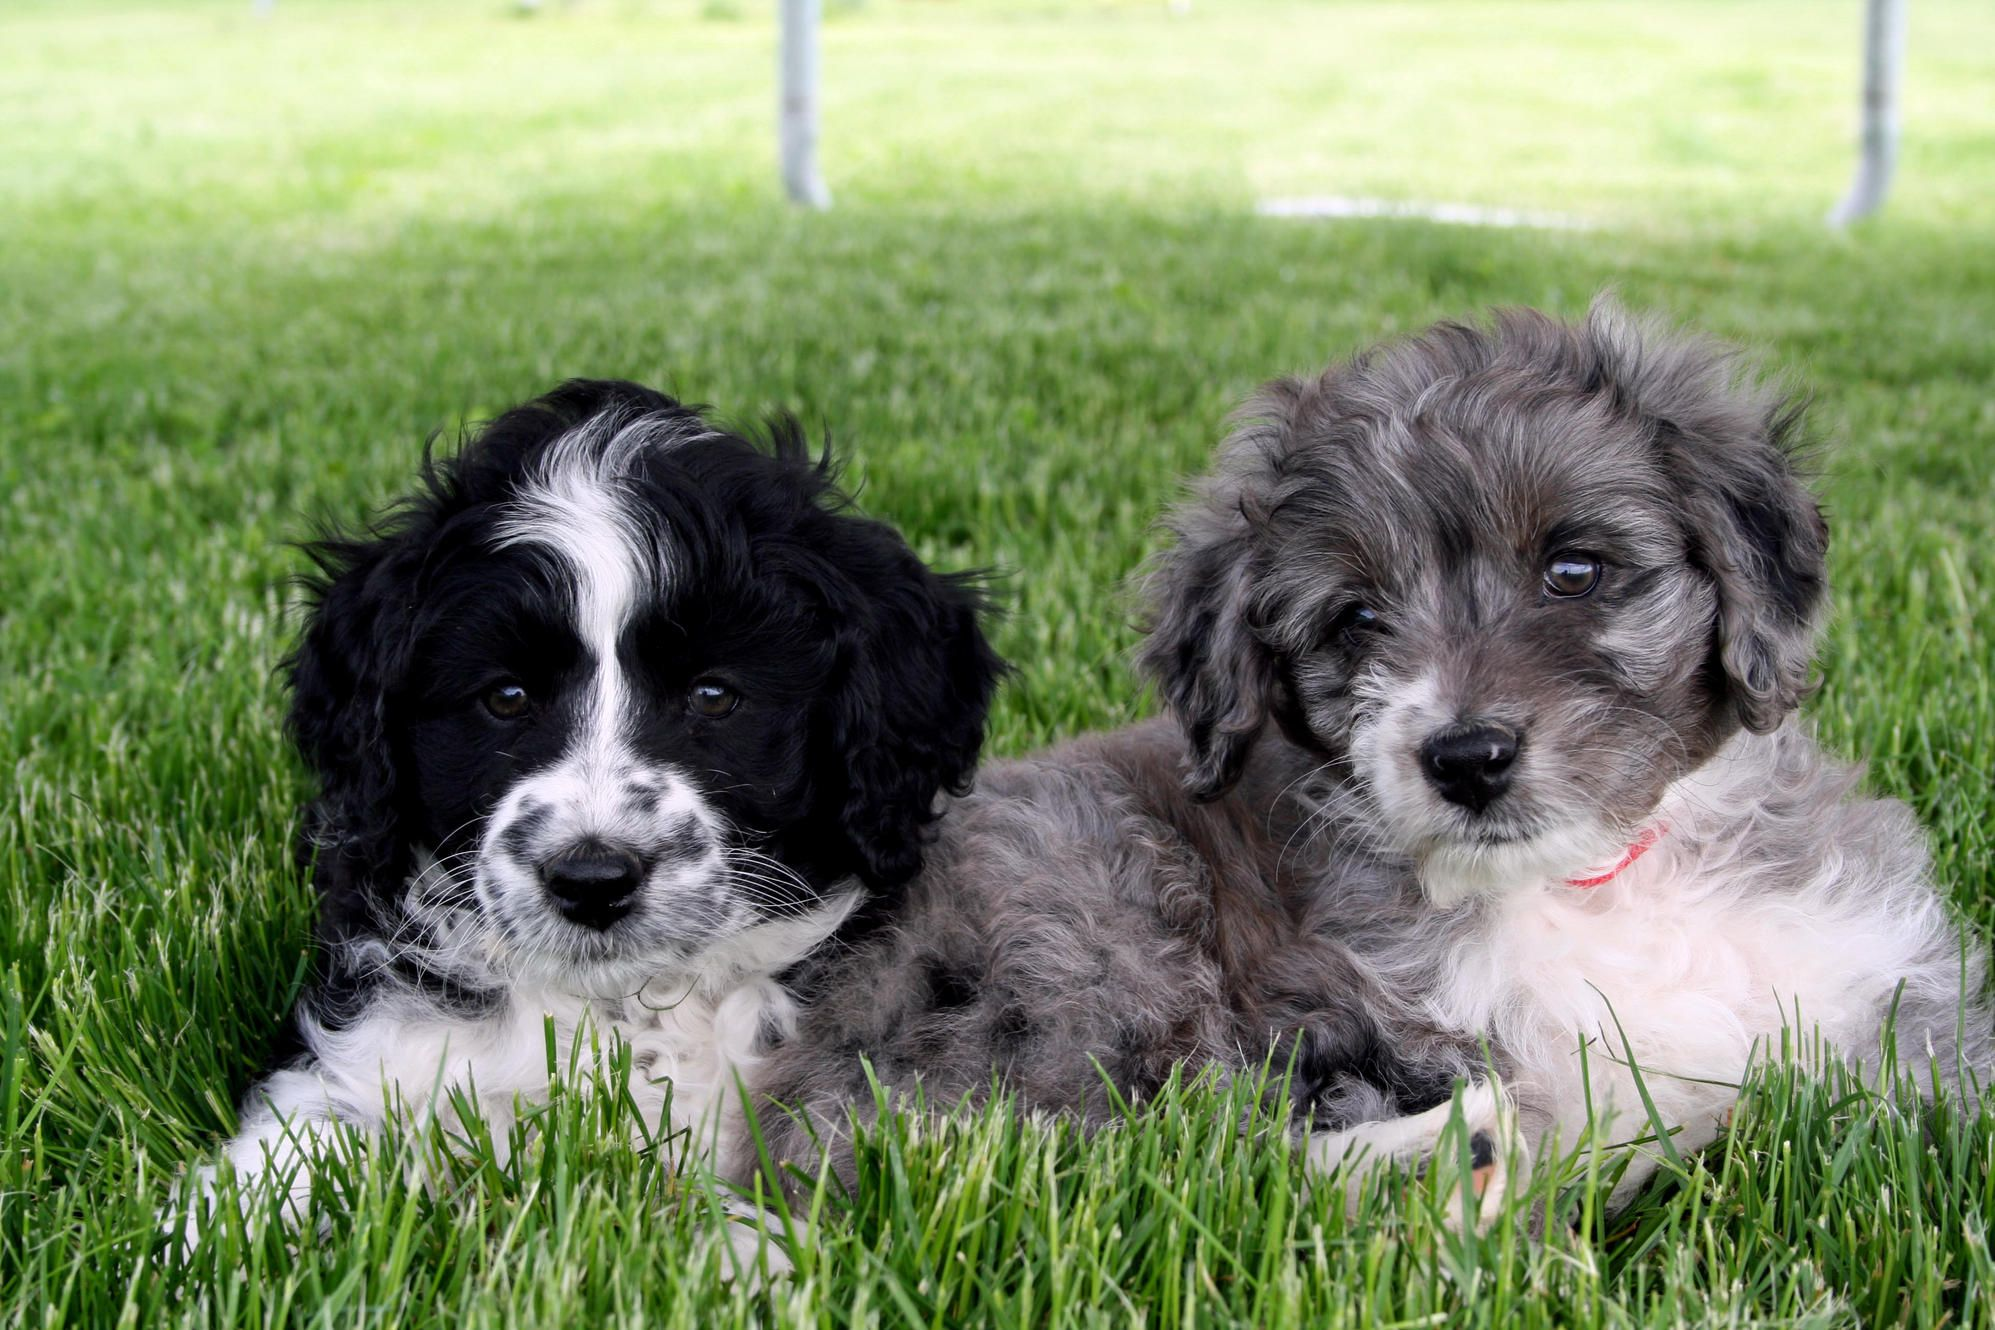 Aussiedoodle puppies for sale. Doodle puppies, cross